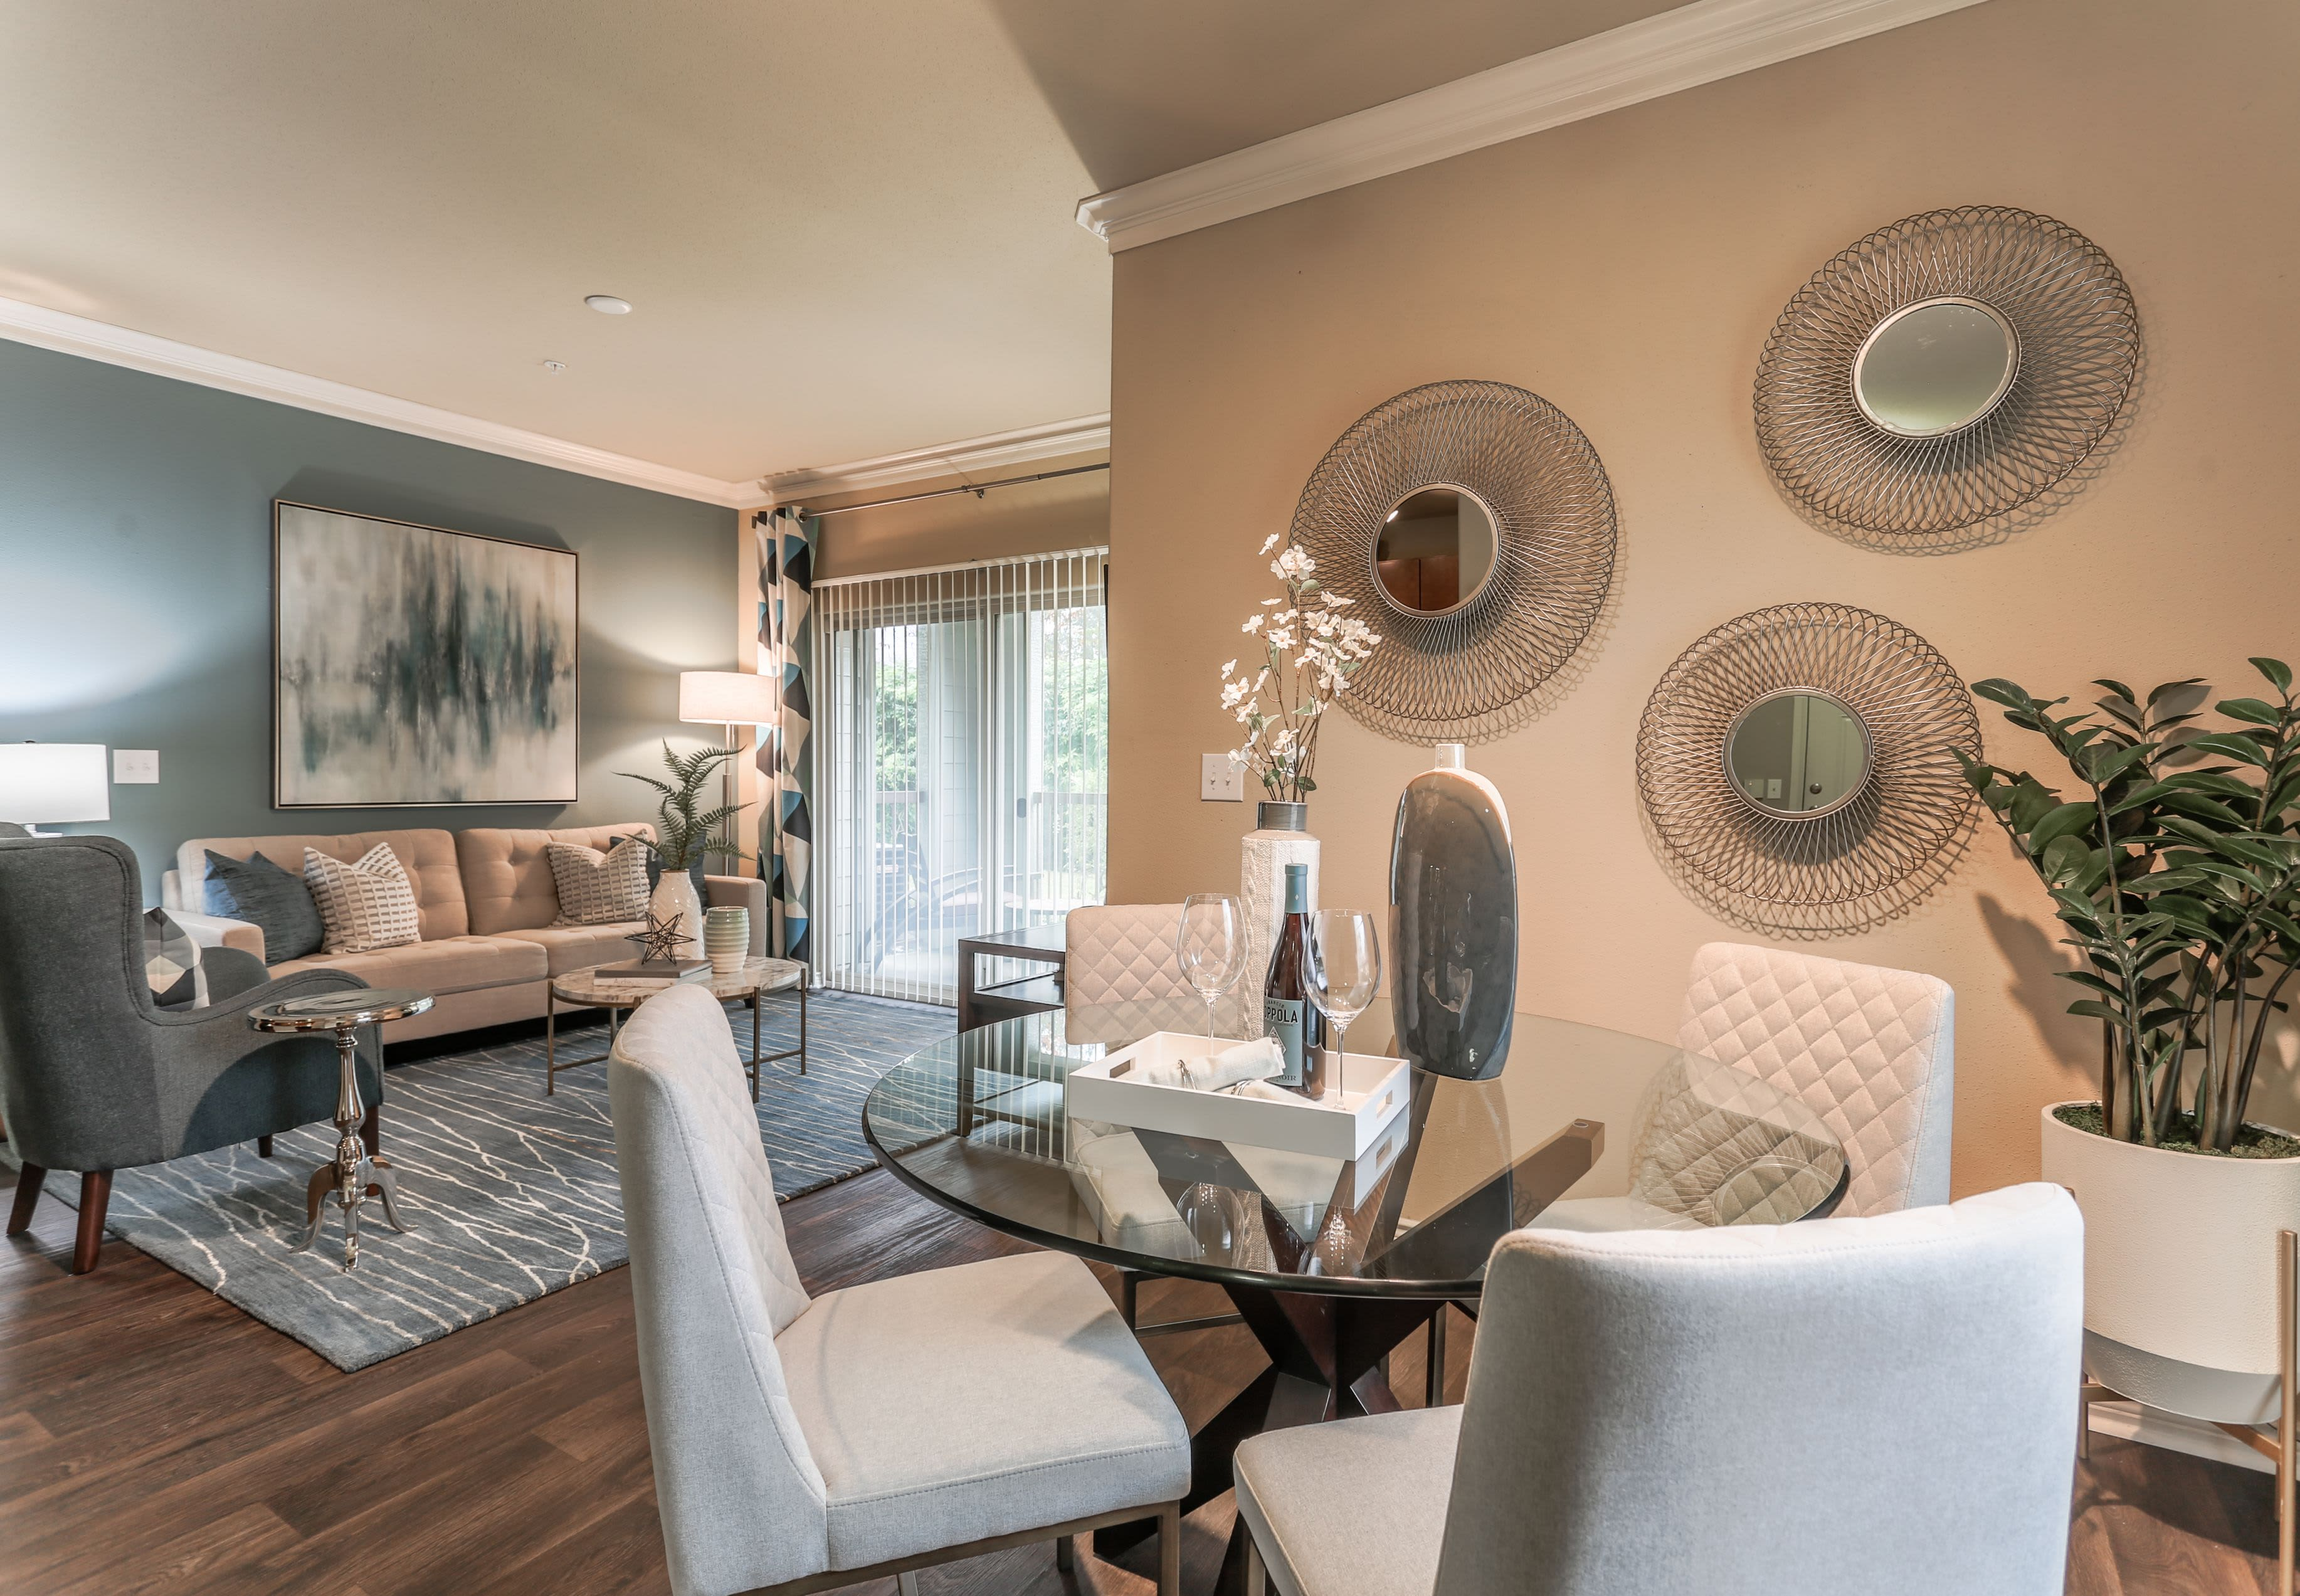 Unit Interior at Sorrento at Tuscan Lakes in League City Texas